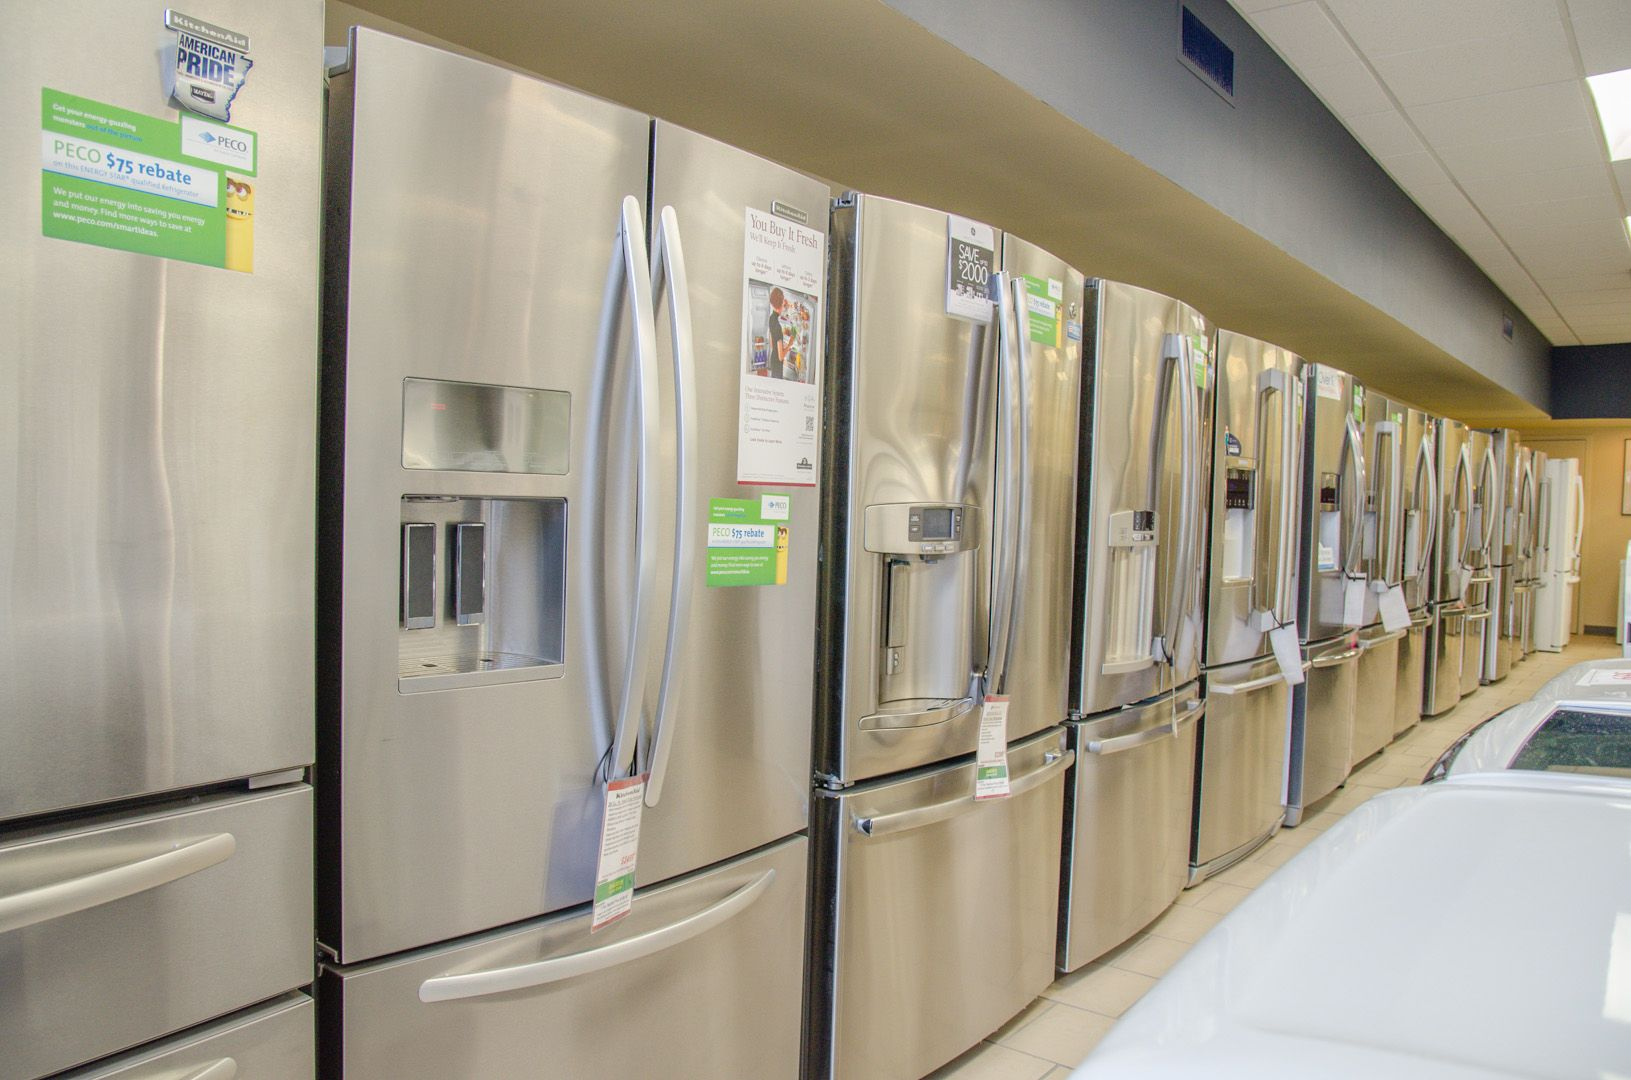 Kitchen Aid French Door Refrigerator Showroom Stainless Steel French Door Top And